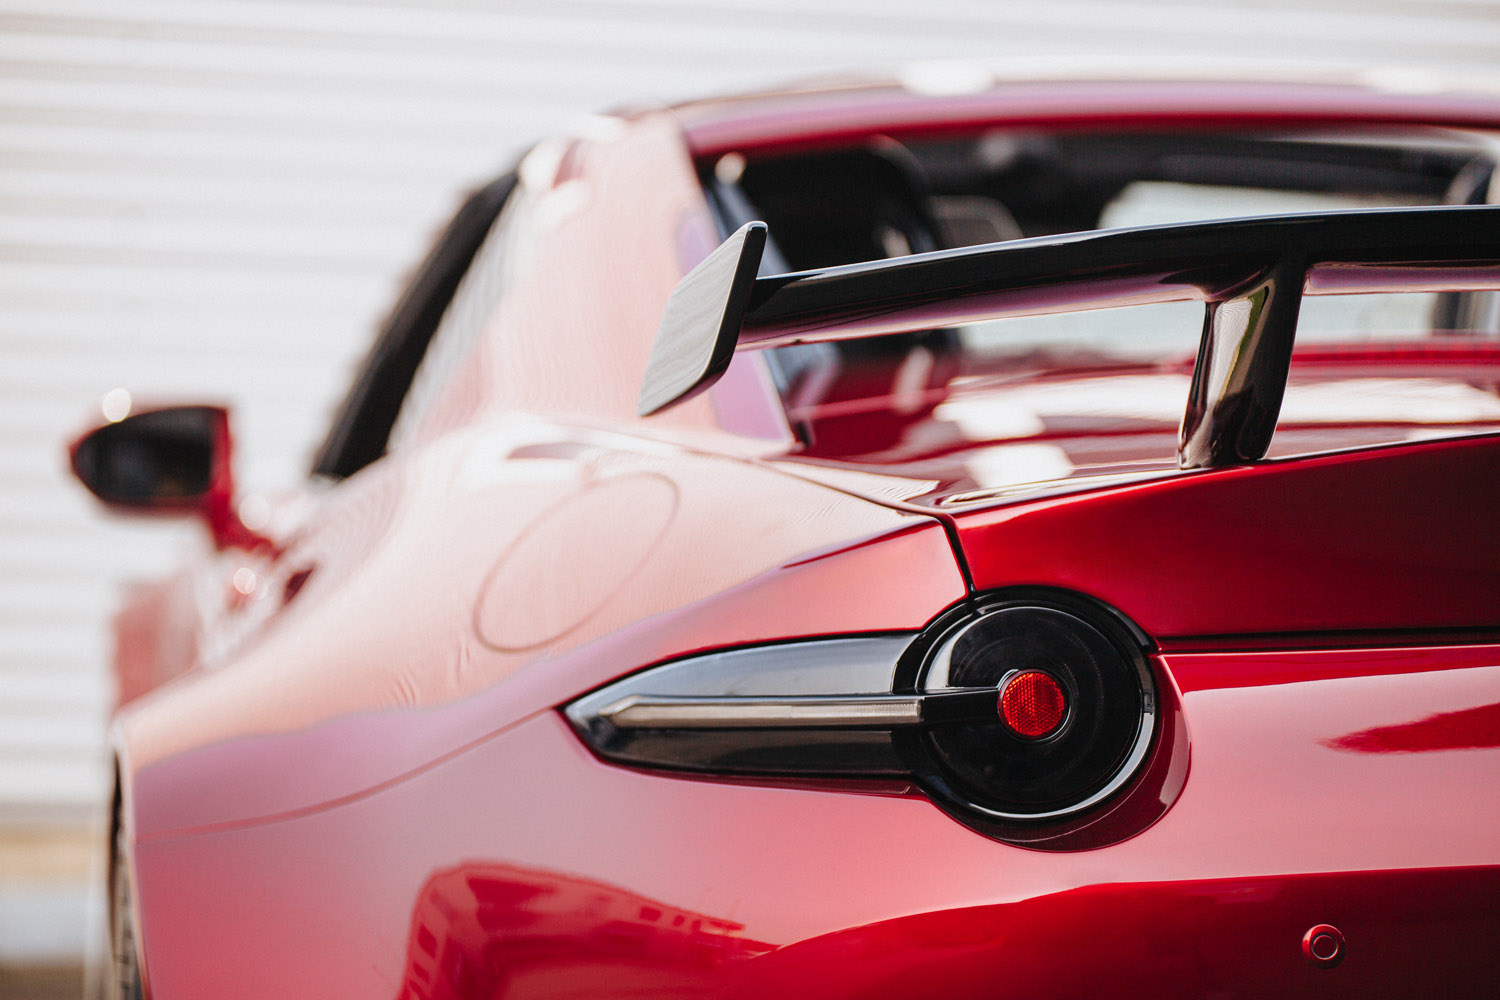 Close up image of Tinted Tail Lights installed on a red ND Miata